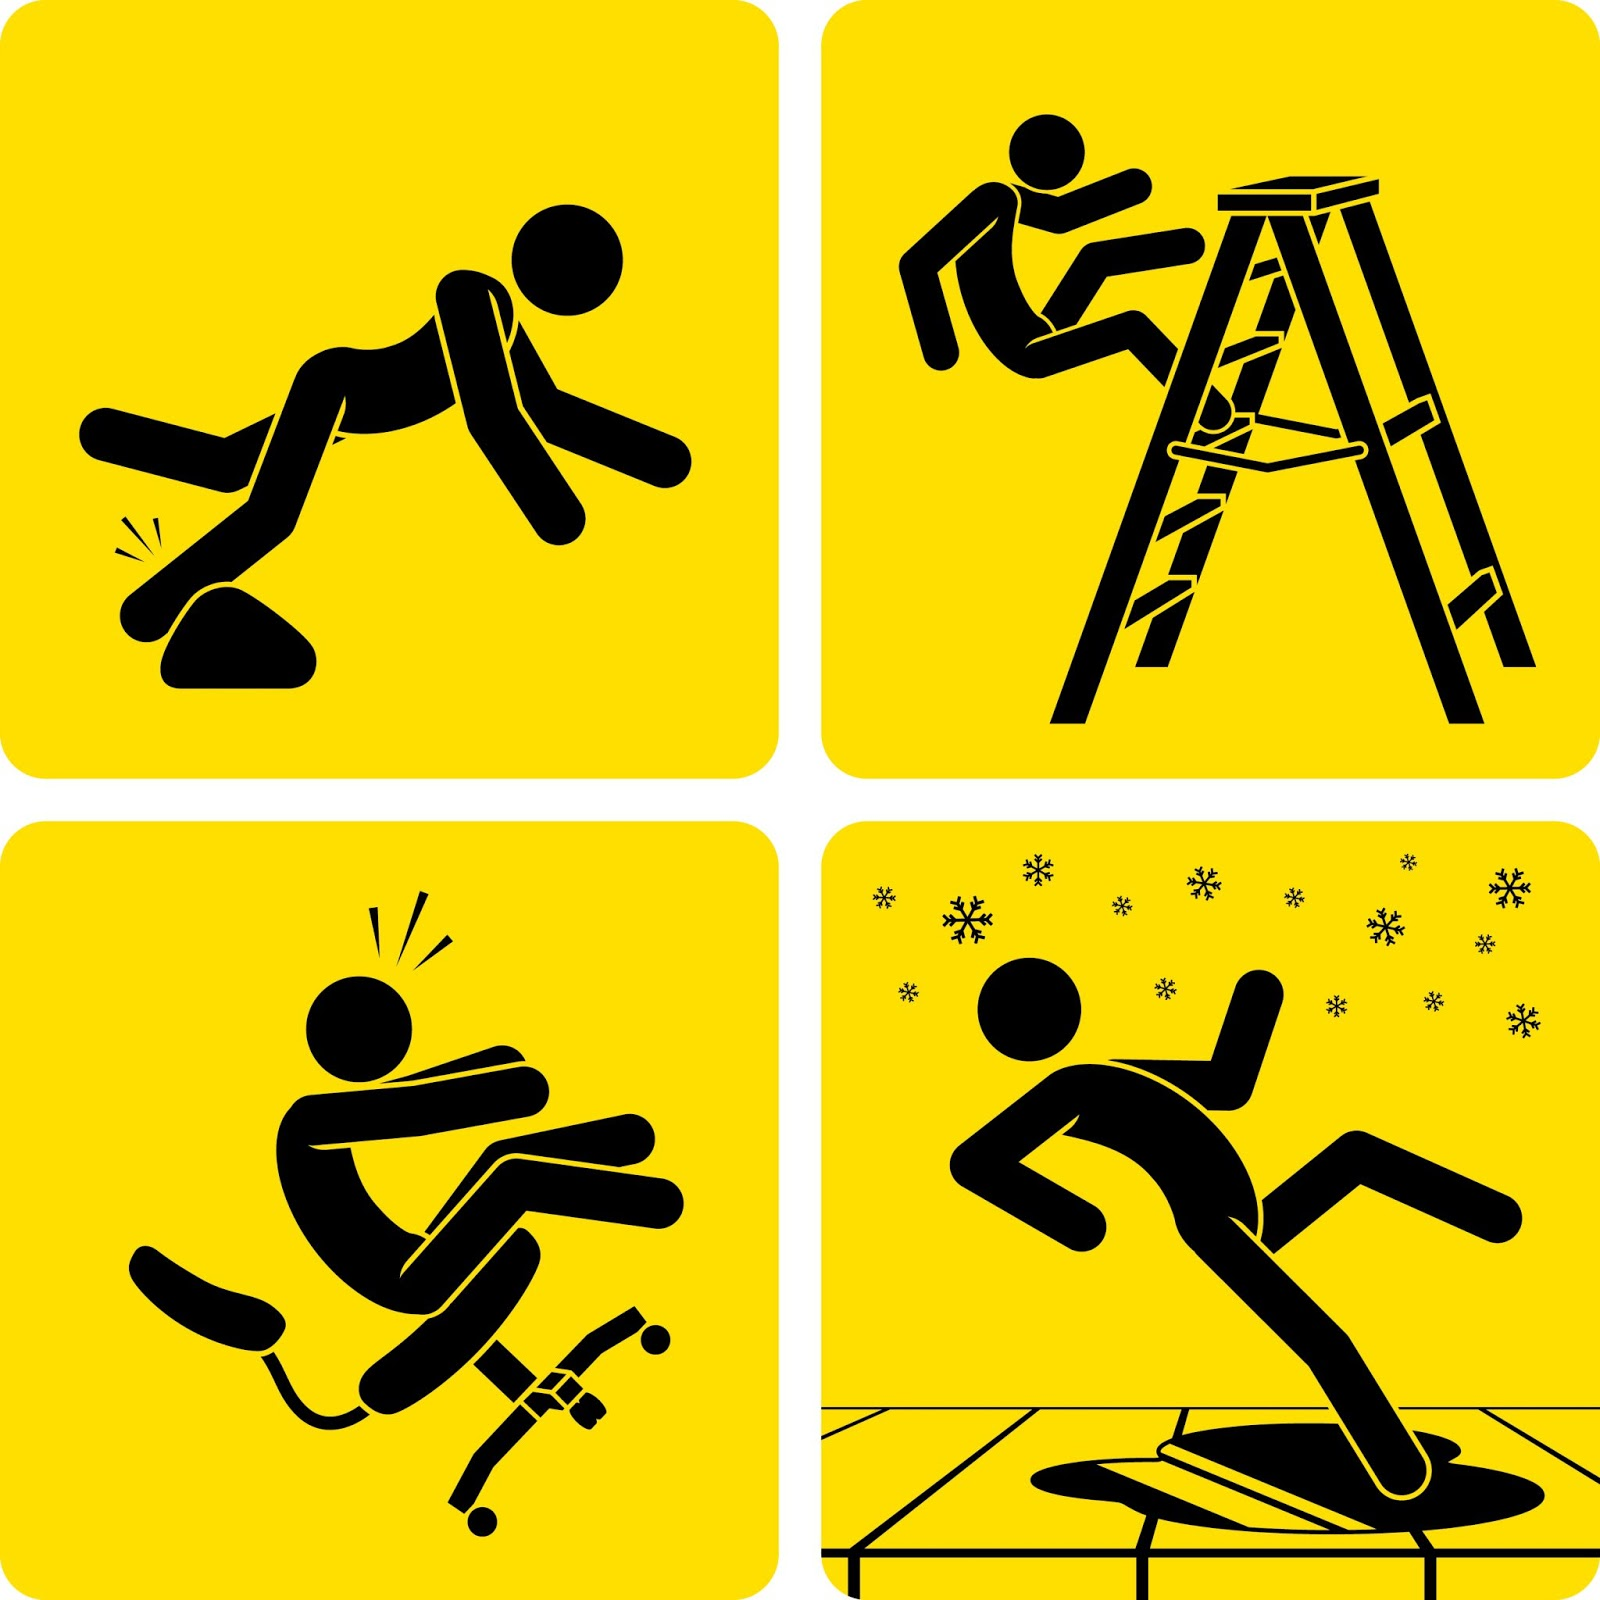 Slip clipart industrial accident. My top ten songs